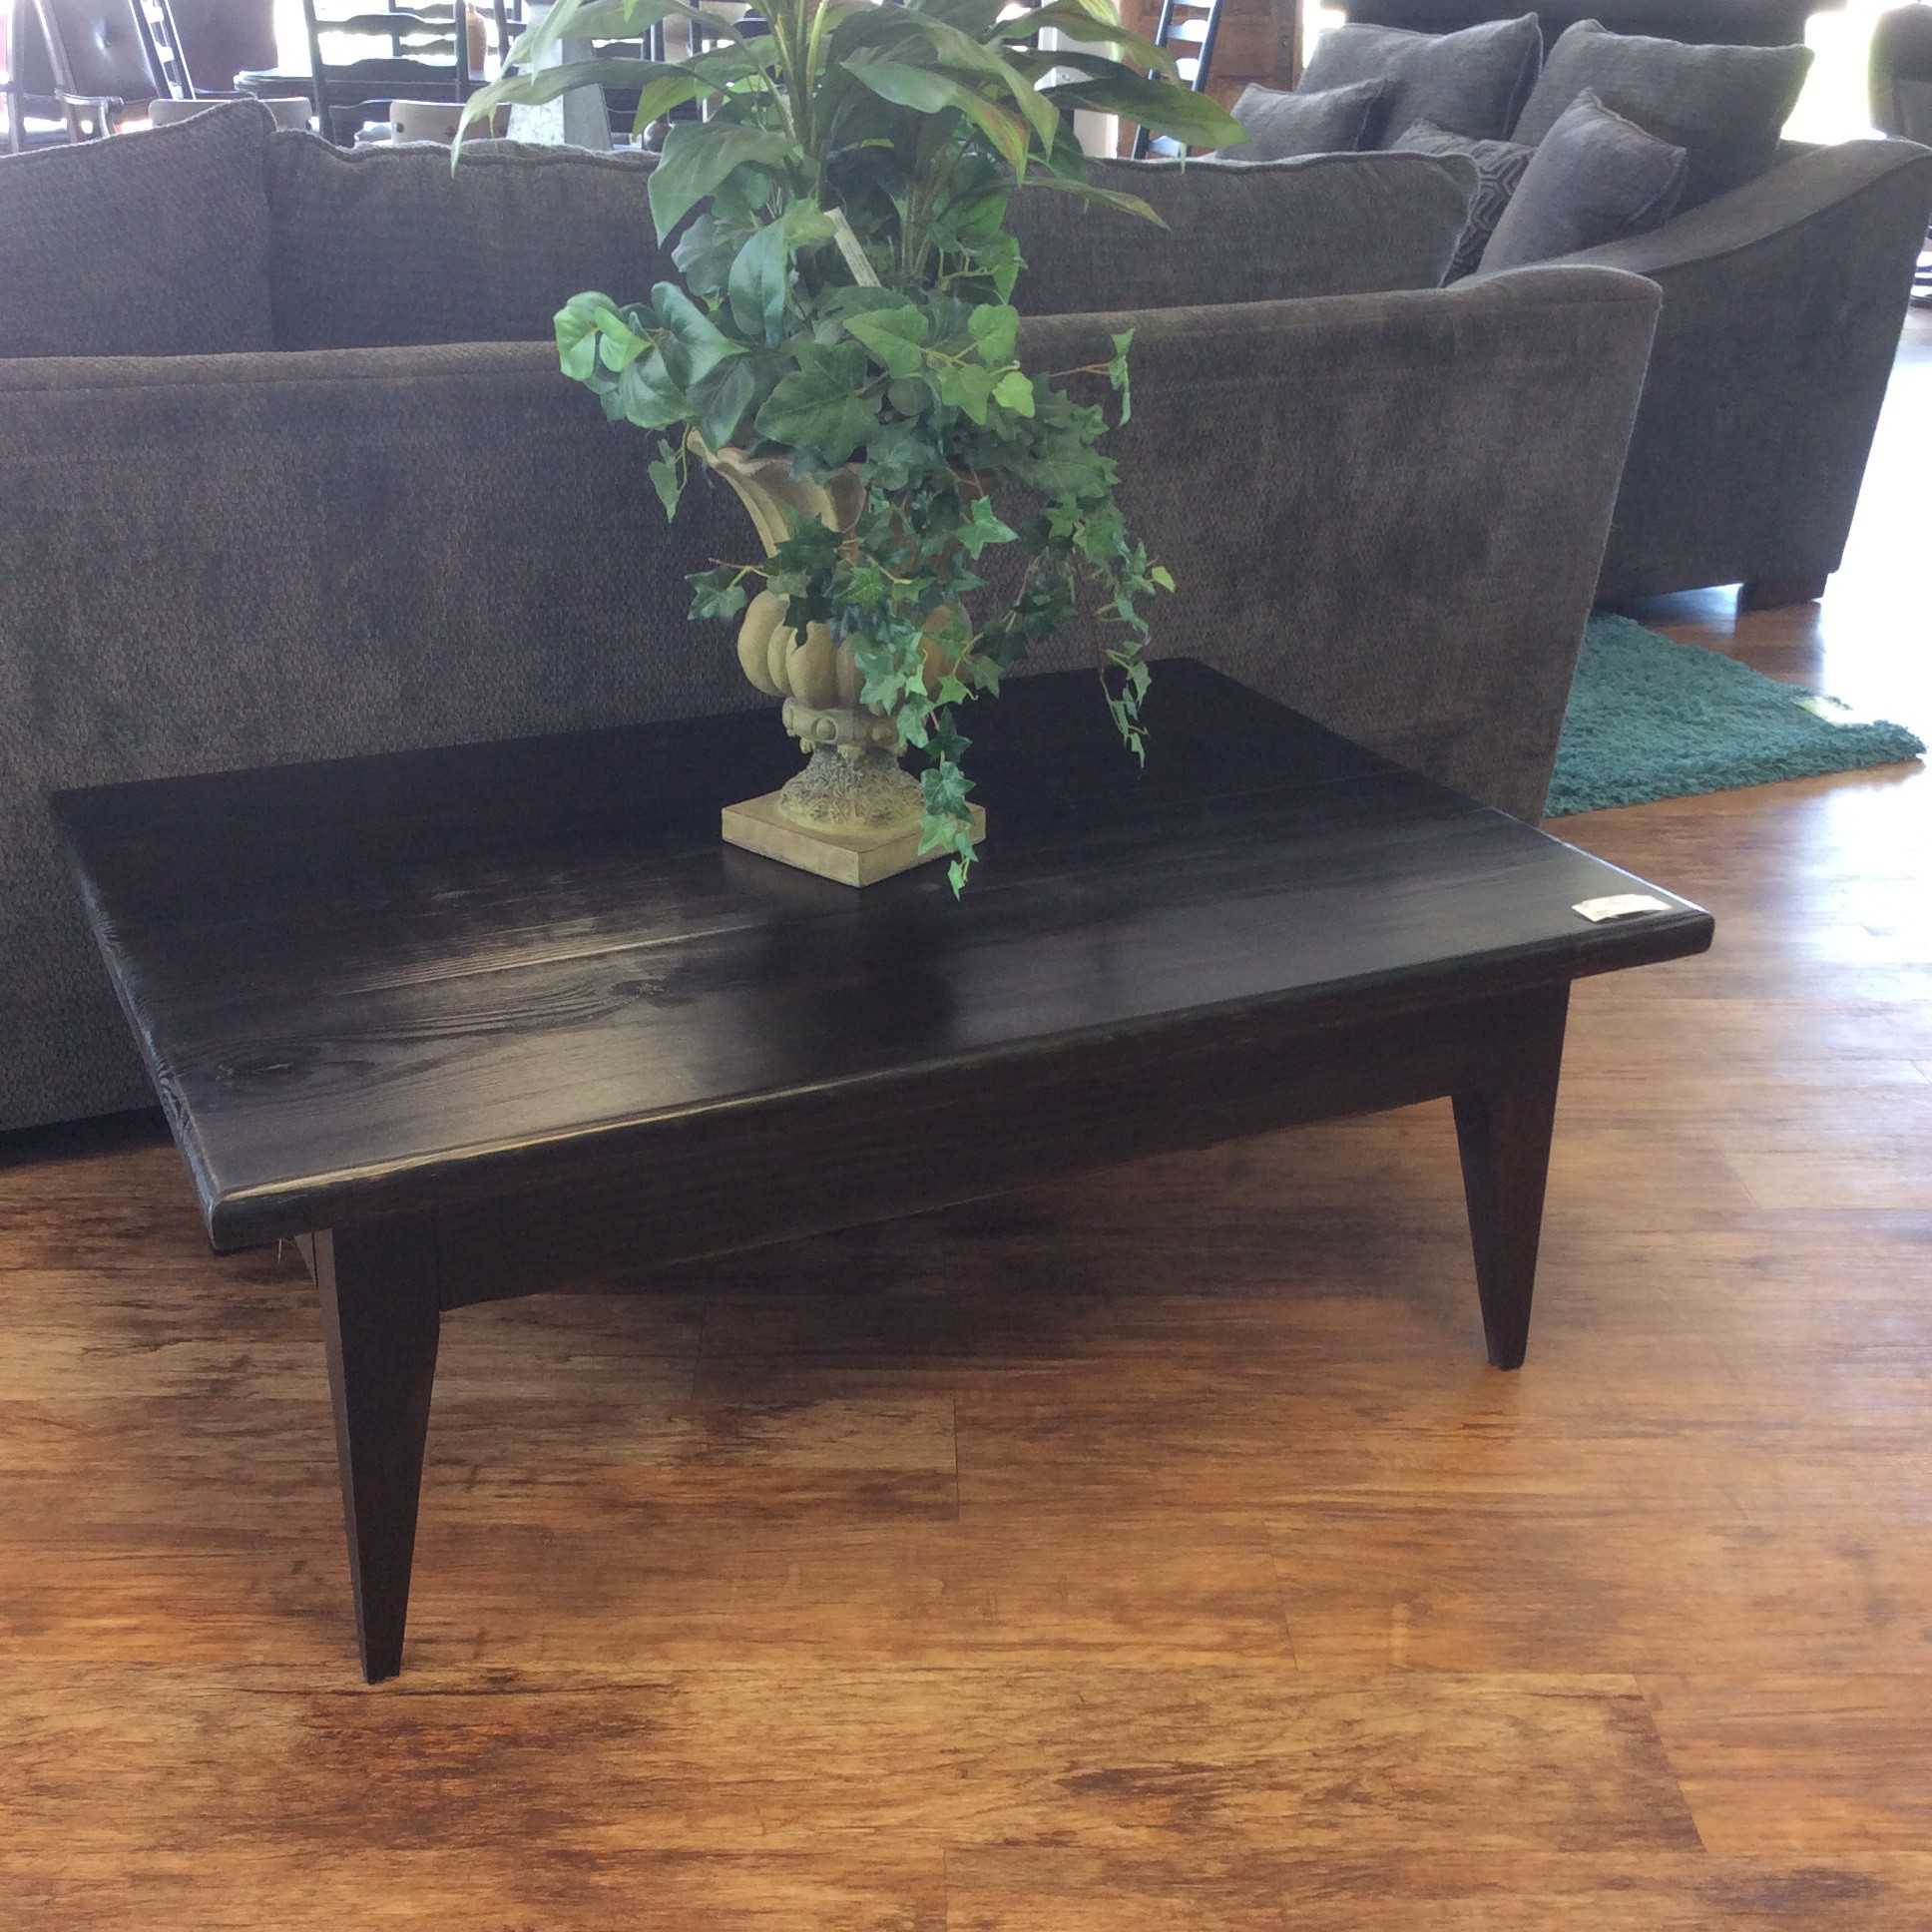 This custom-made, solid pine wood coffee table is another exciting piece by Greg Watson! Jet black with a bit of brown for accent and contemporary in design - it's super stylish. Greg's furniture doesn't last here for long, so come on by and see it for yourself!